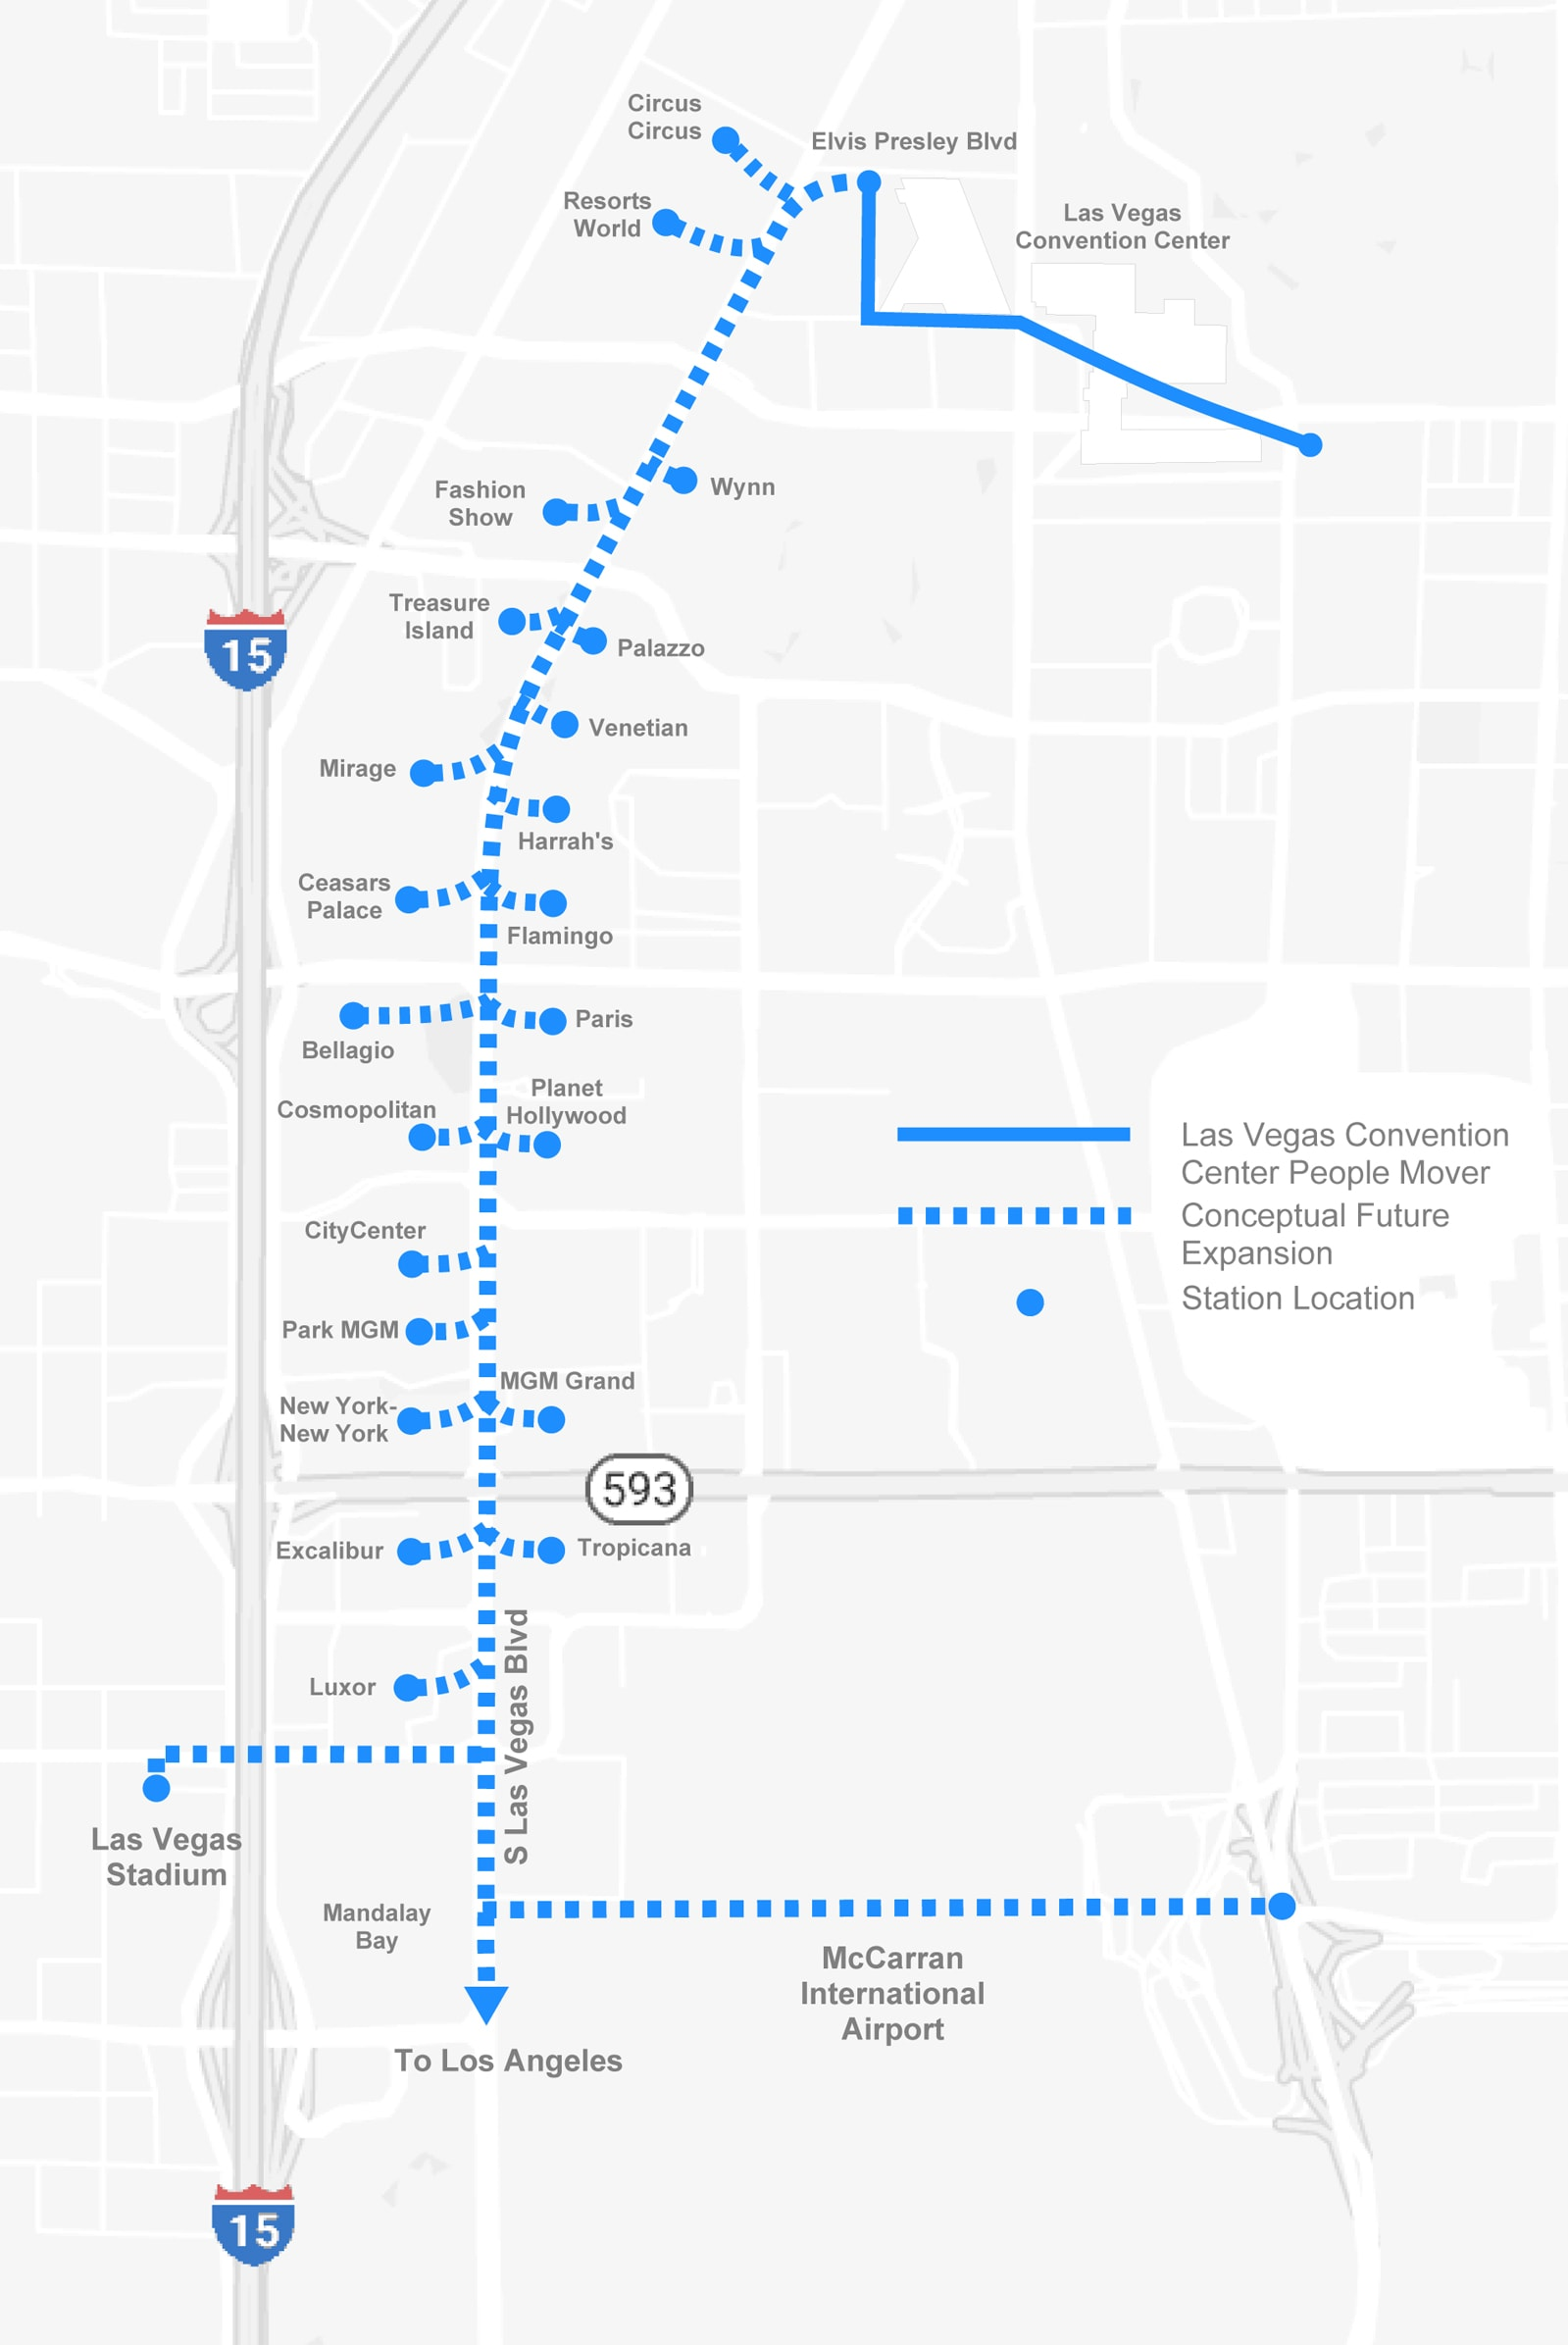 Proposed Boring Company tunnel route for Las Vegas